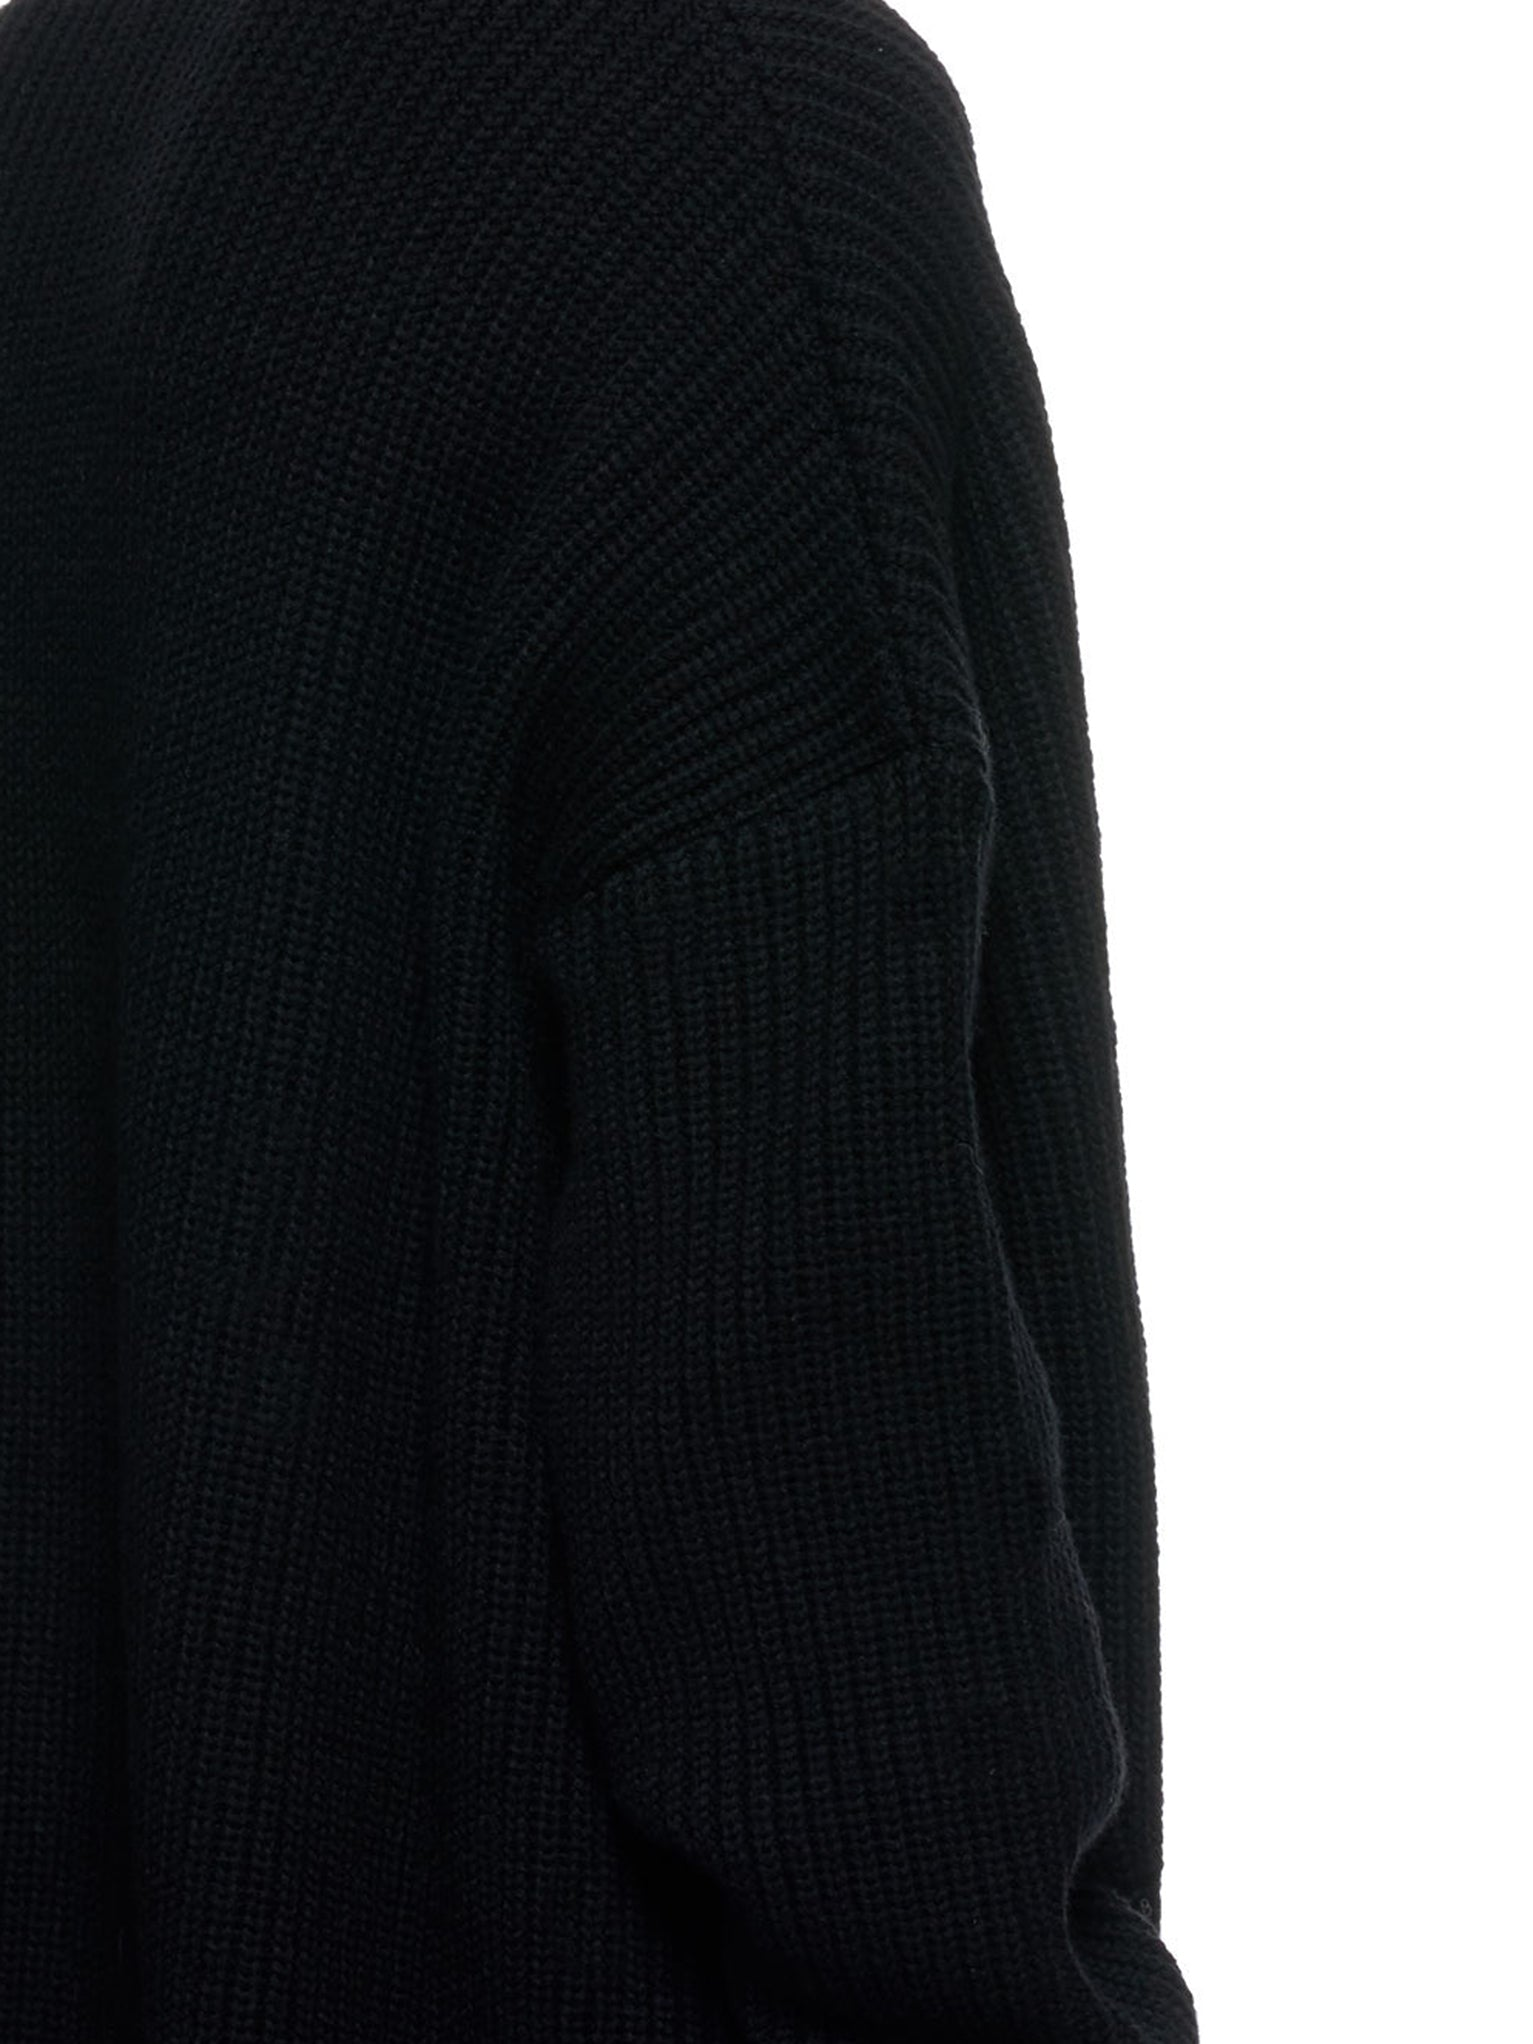 John Lawrence Sullivan Sweater | H.Lorenzo Detail 2